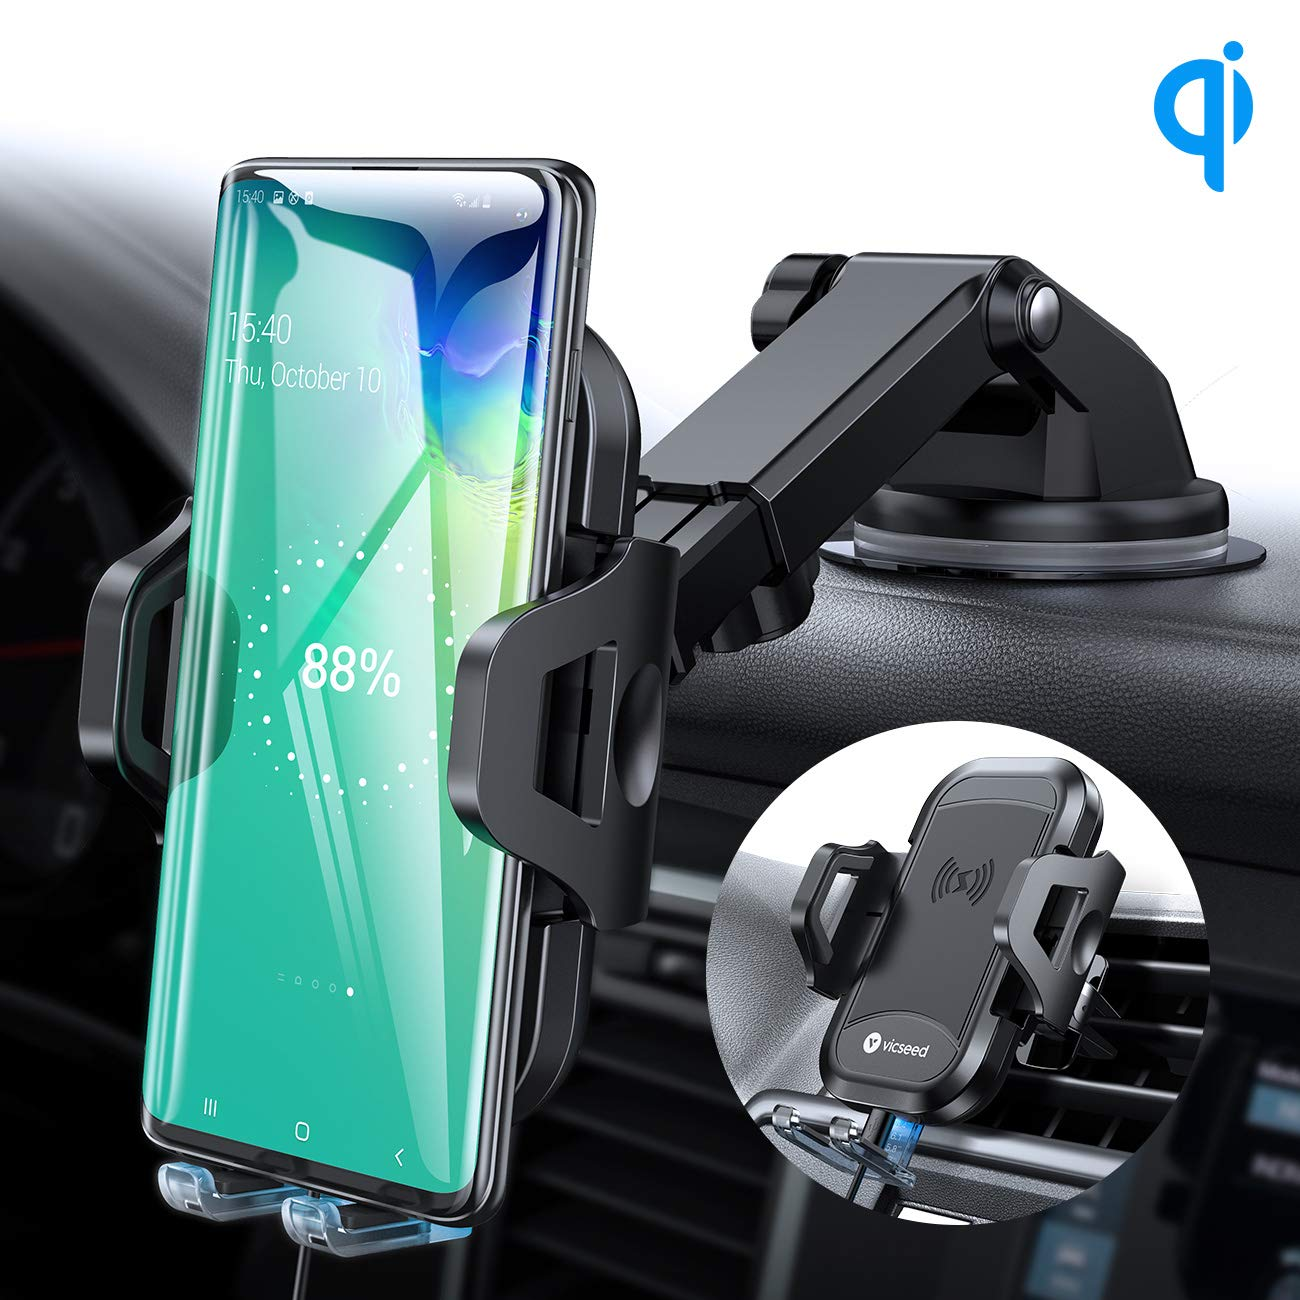 VICSEED 3-in-1 Wireless Car Charger Mount Qi Fast Charging 10W 7.5W Dashboard Windshield Air Vent Phone Holder for Car Mount Fit for iPhone 11 Pro Max XS X XR Samsung Note9 S10 S9 LG Phones etc. by VICSEED